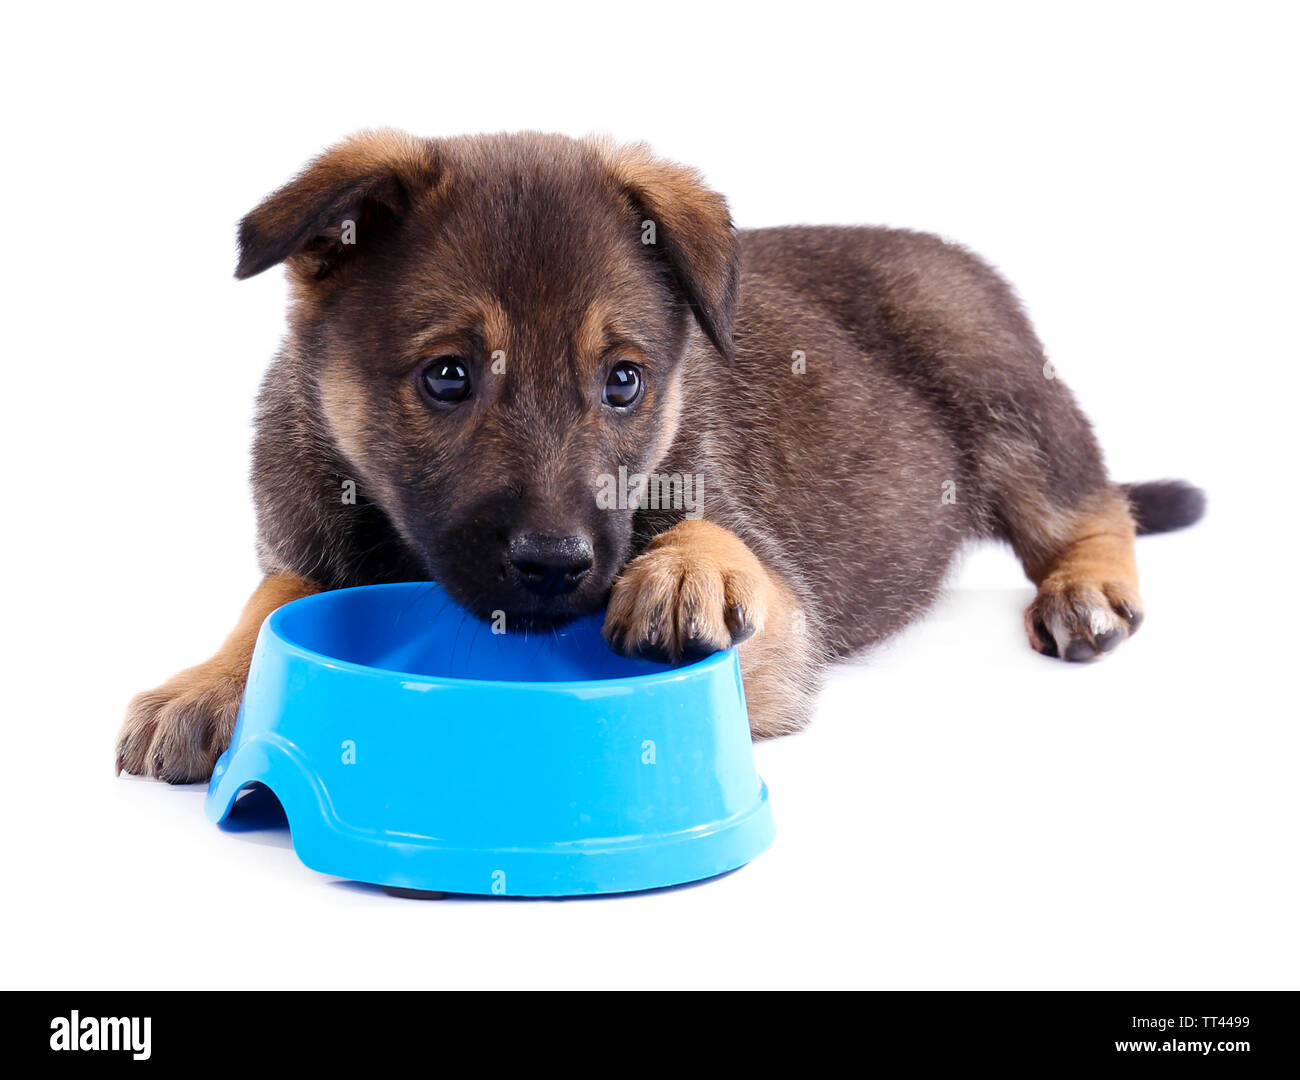 Puppy and empty blue bowl isolated on white - Stock Image